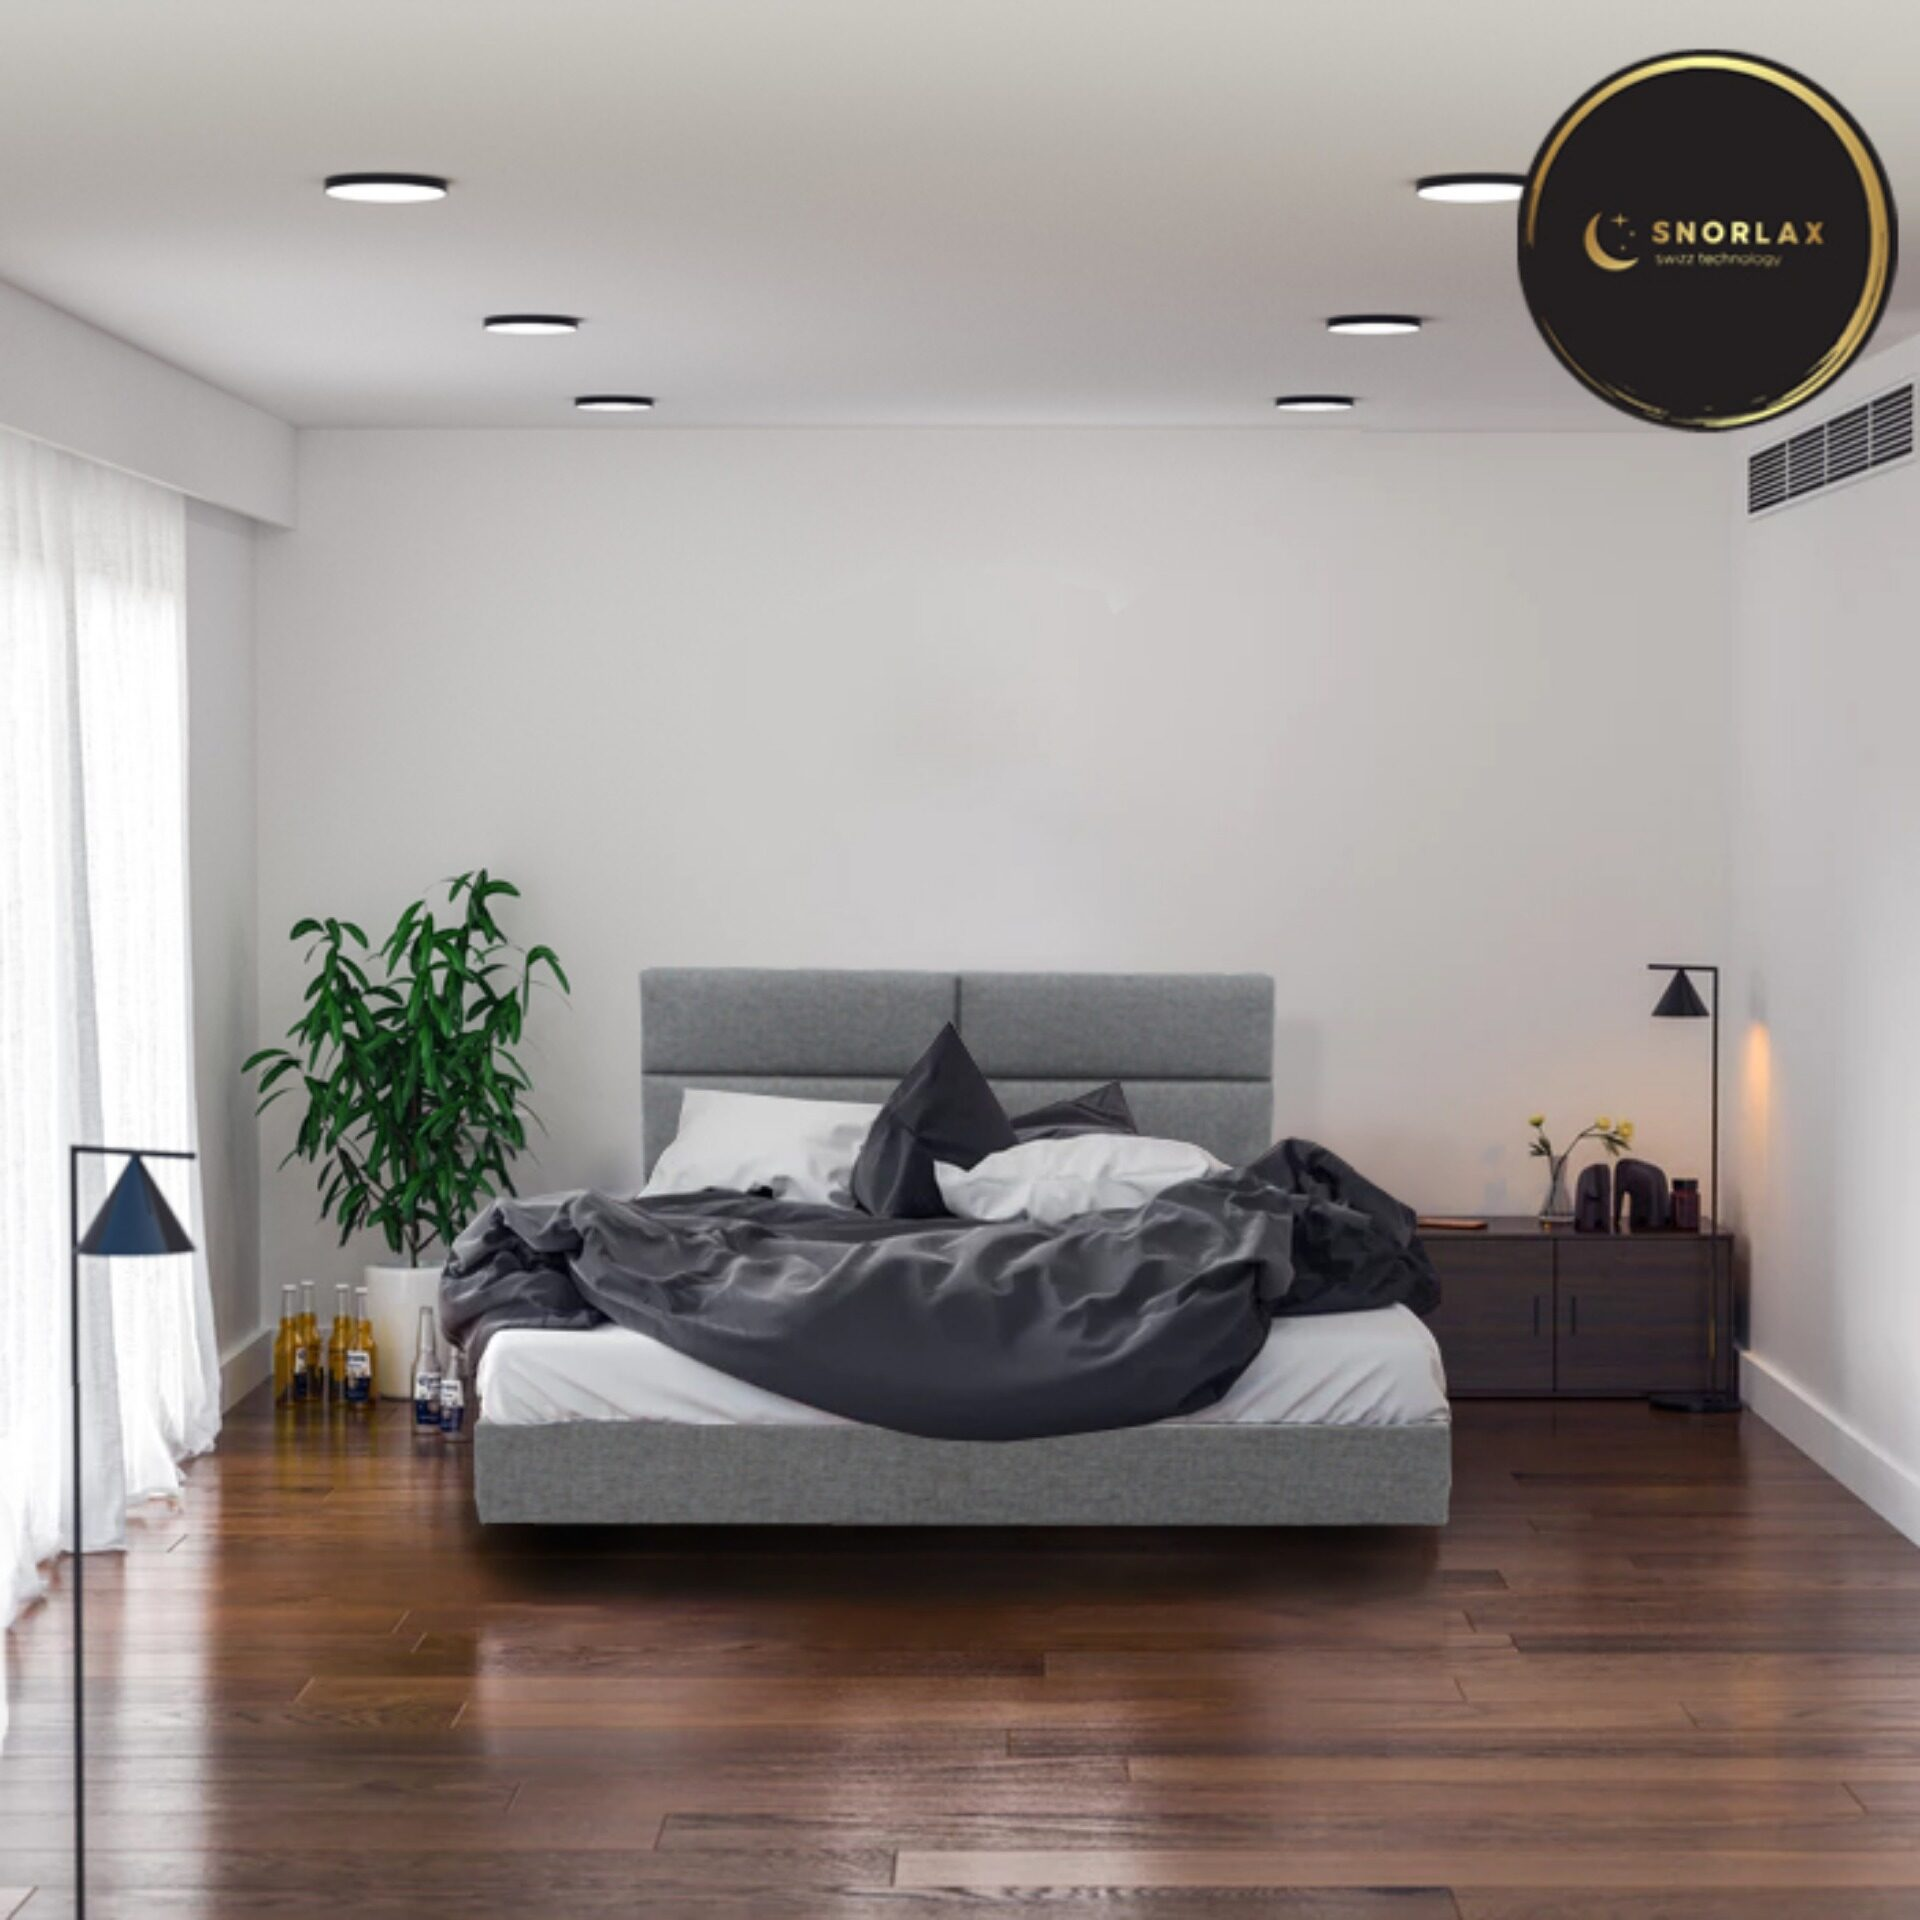 Snorlax Hemnes (Single) (Queen) (King) Size Bed Frame / Katil / Divan + Headboard (Mattress not included)